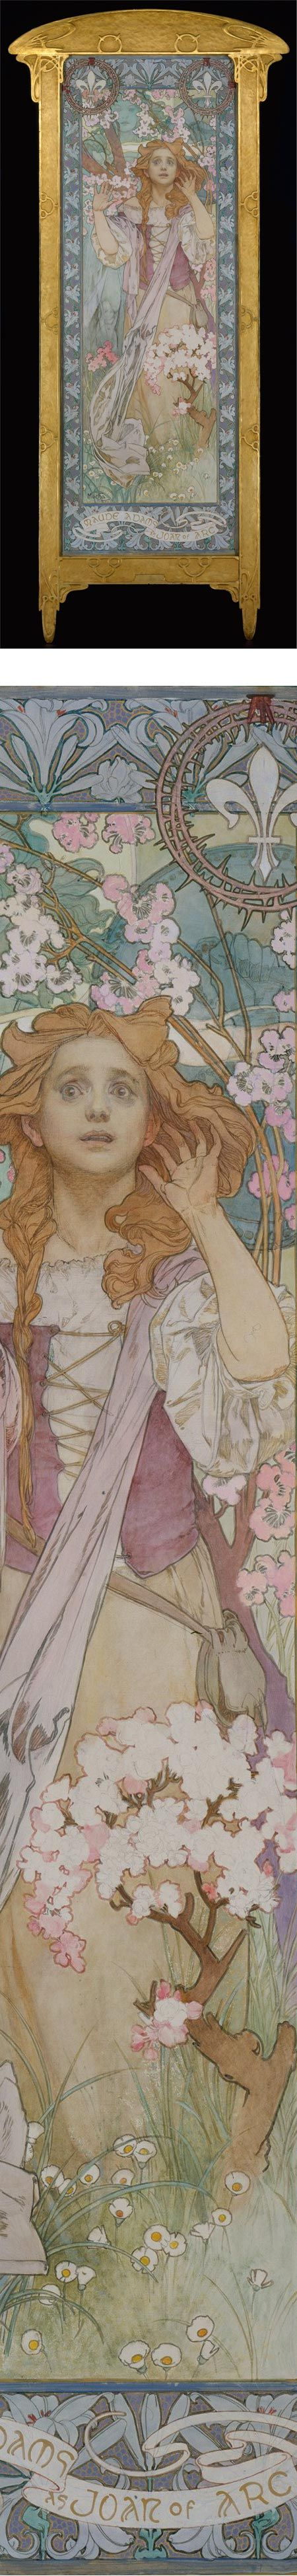 Hearing The Voice.    Oil on canvas. Mucha designed the frame as well.    In the Metropolitan Museum of Art.   Hosted on Lines and Colors blog; Charley Parker